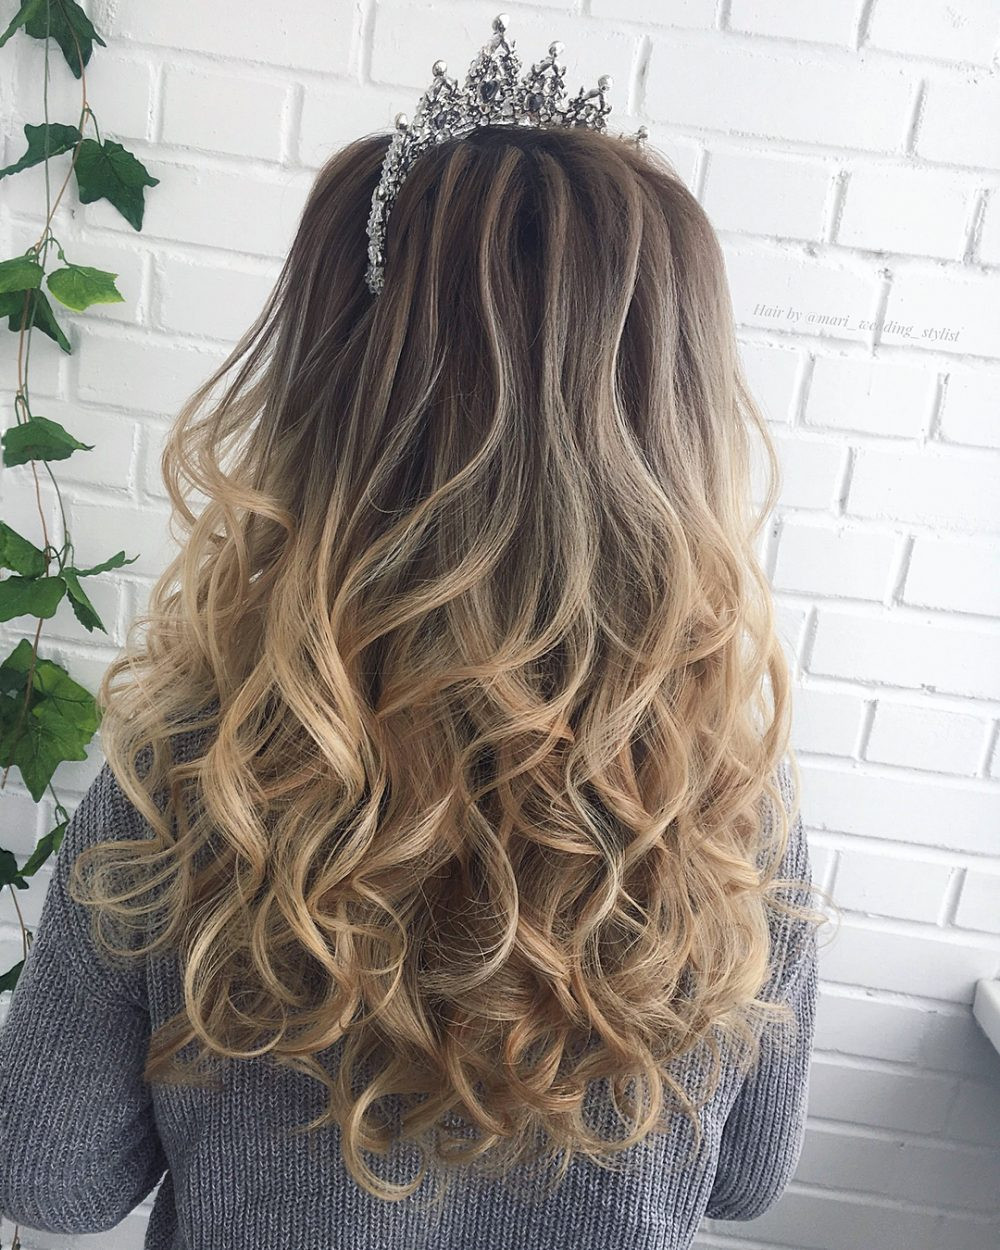 Best ideas about Prom Down Hairstyles . Save or Pin 22 Perfectly Gorgeous Down Hairstyles for Prom Now.